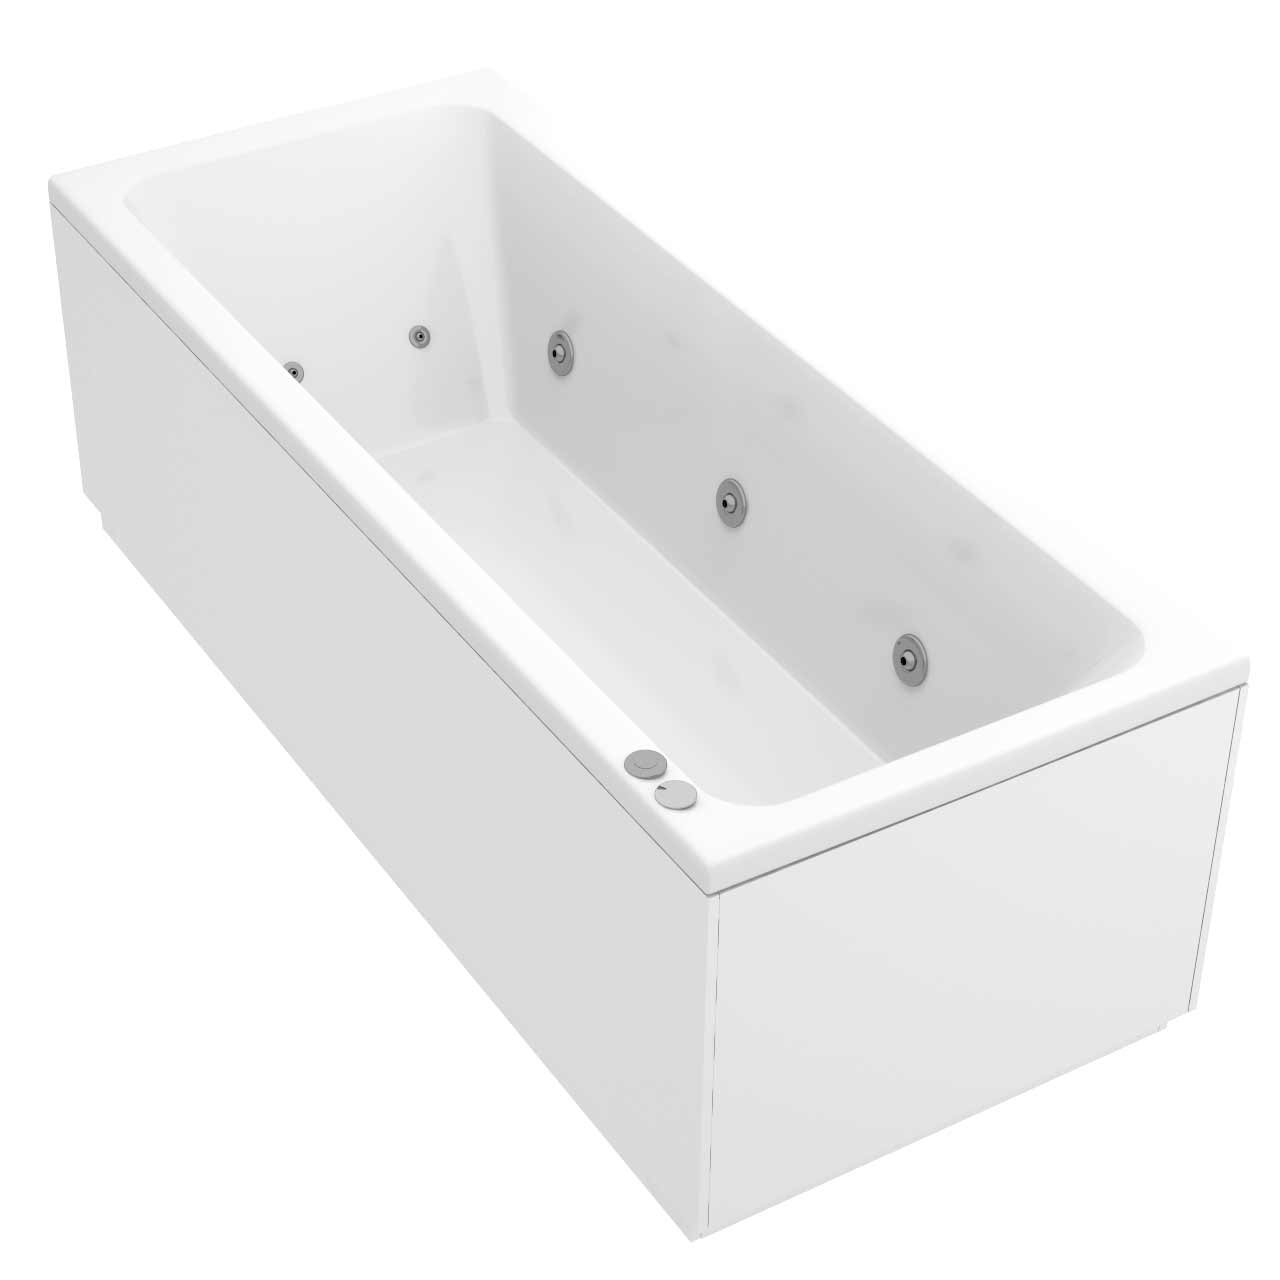 Square Centre Tap 12 Jet Chrome V-Tec Whirlpool Bath 1700x700mm